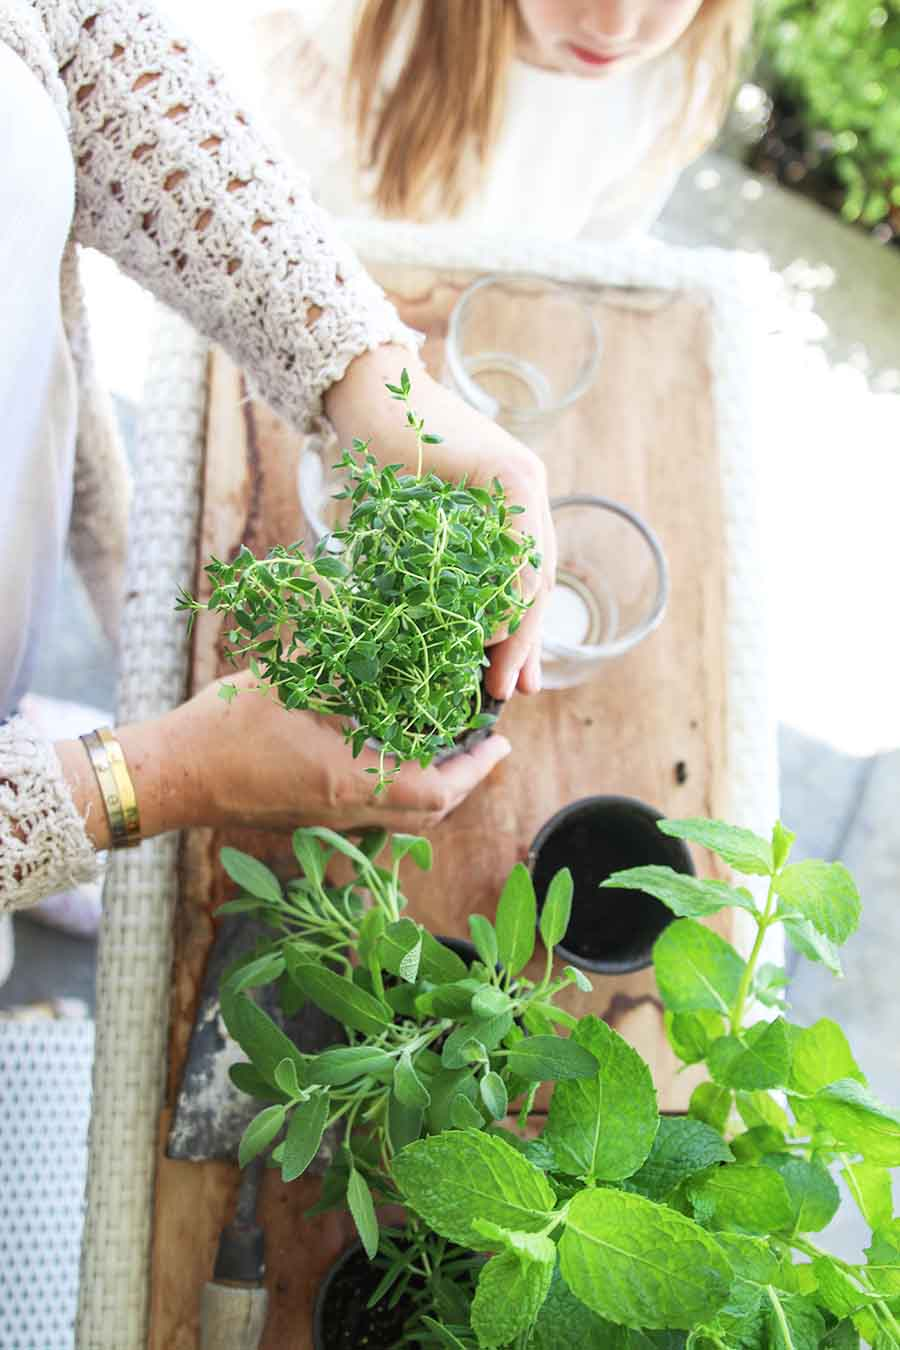 Planting an Indoor Herb Garden using chic candle jars as pots. #DIY #Repurpose #HerbGarden #Fashionablehome